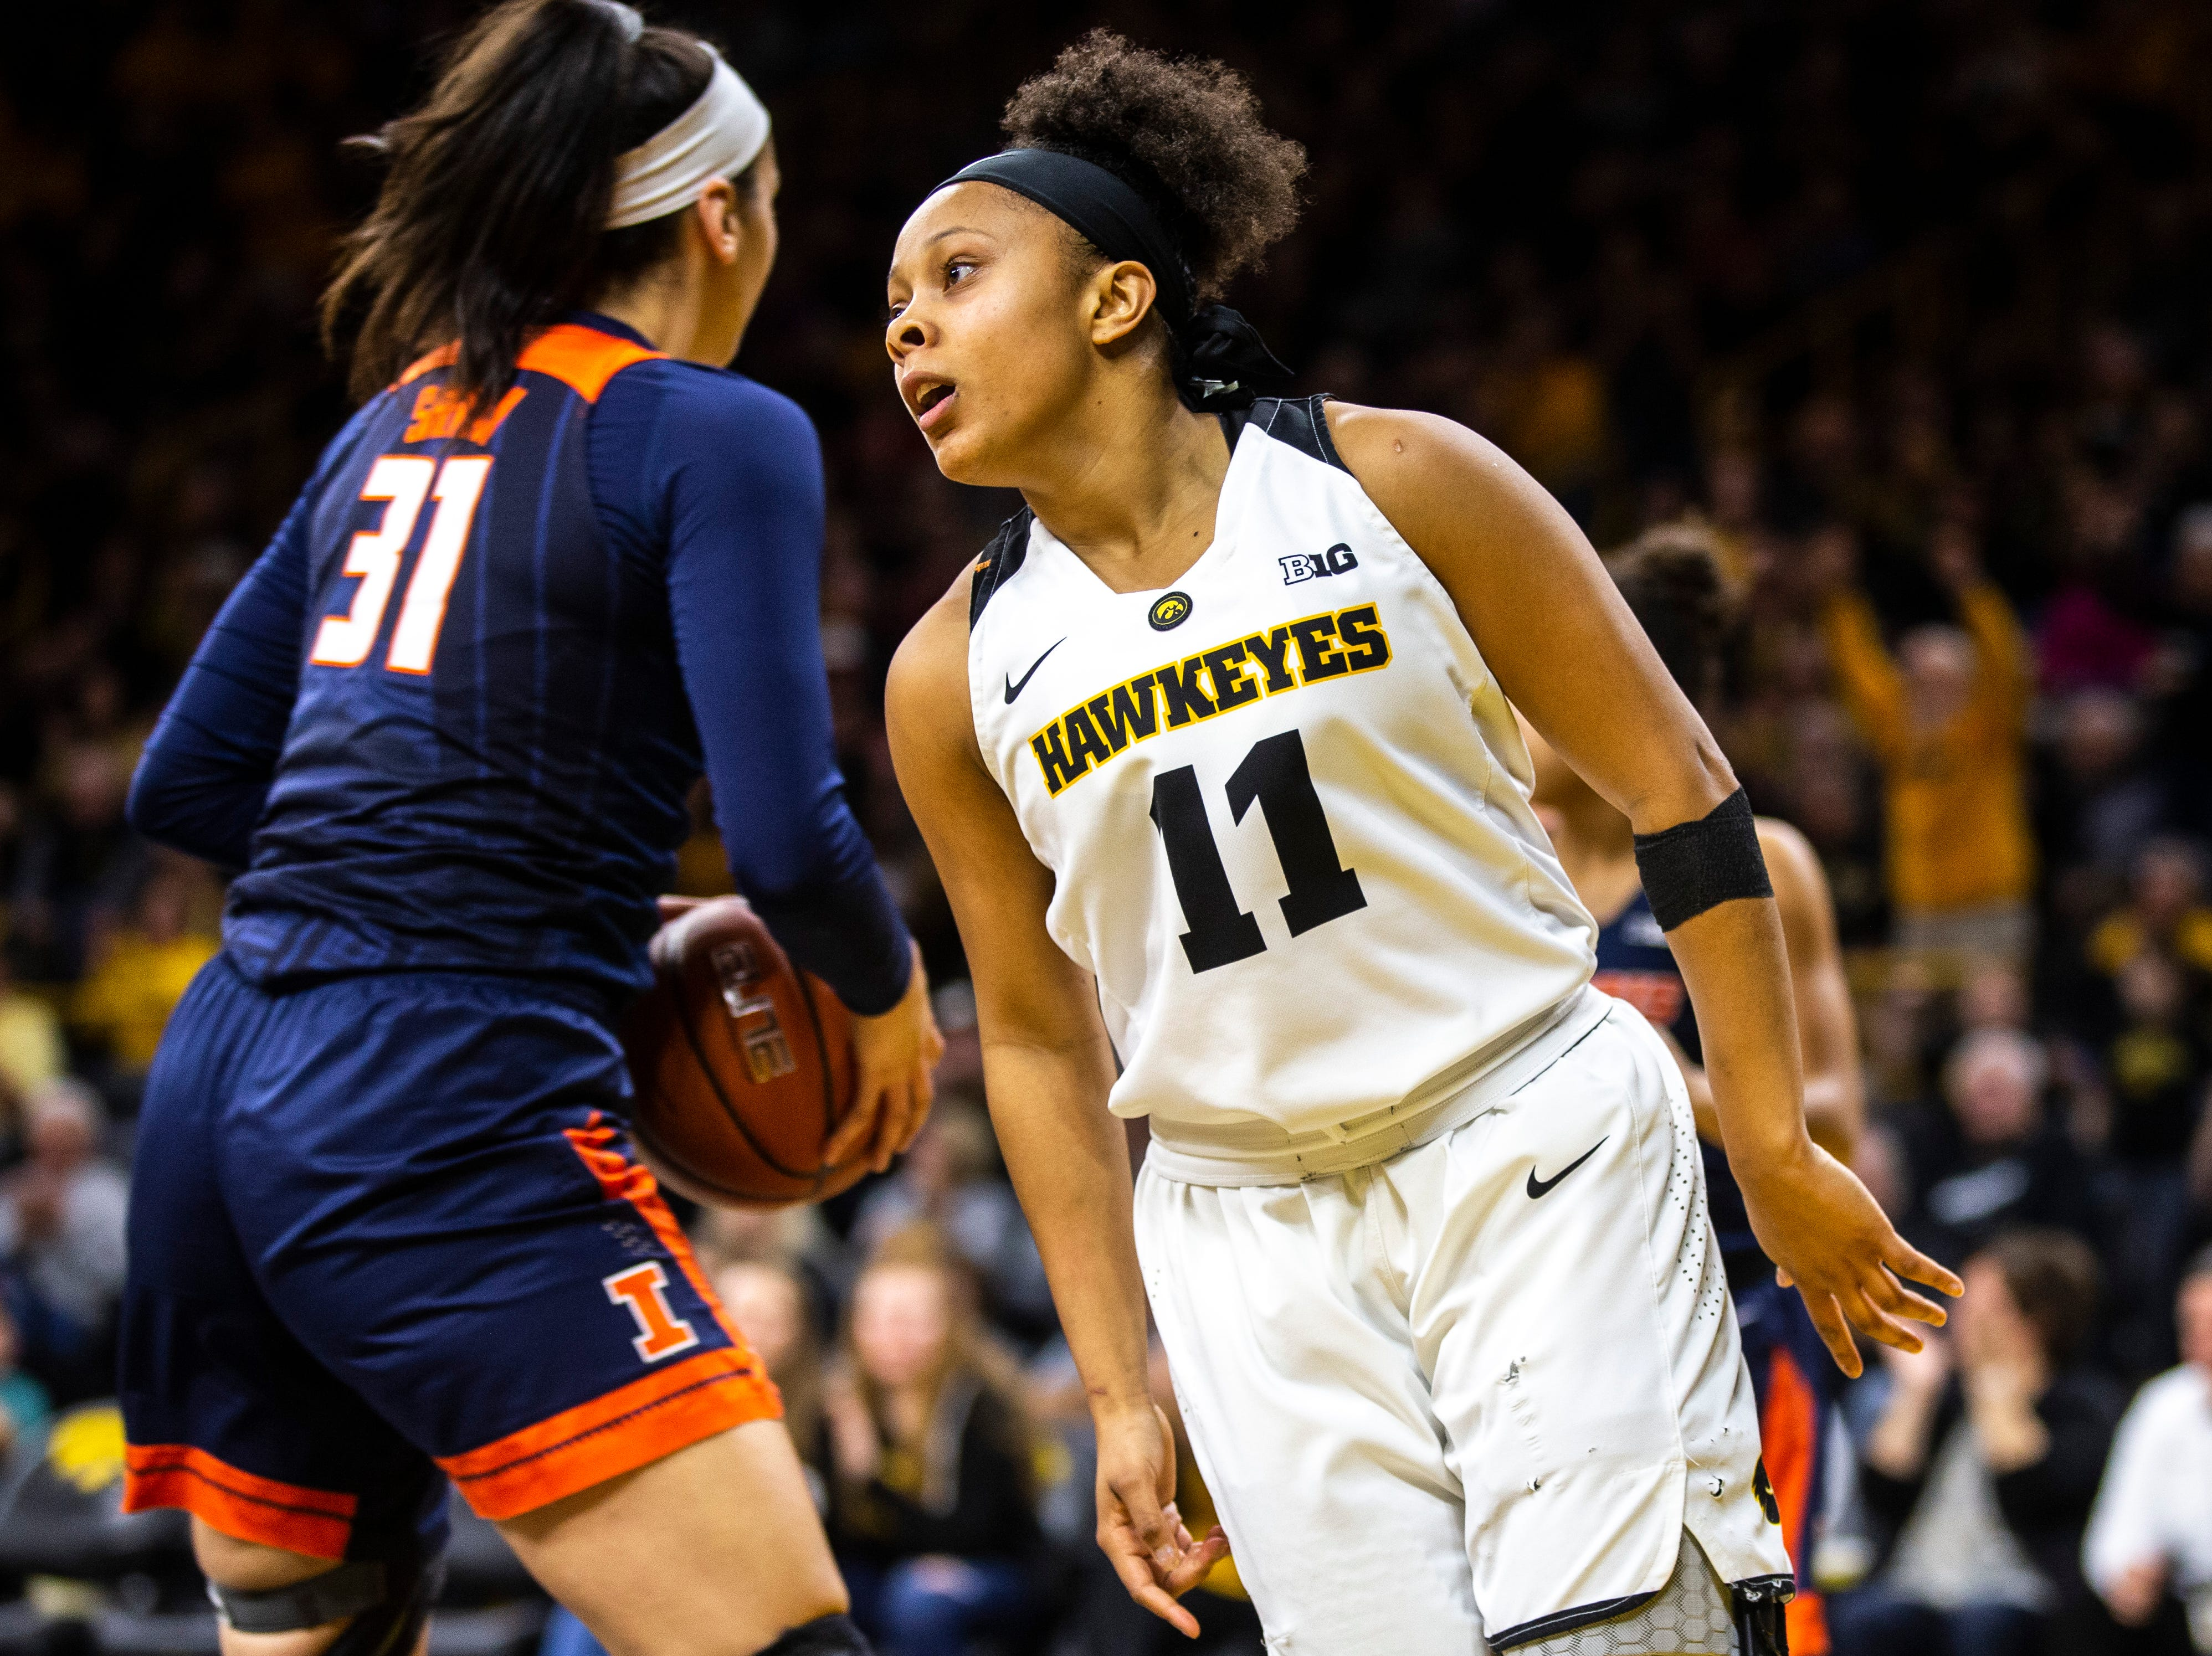 Iowa guard Tania Davis (11) reacts after making a layup during a NCAA Big Ten Conference women's basketball game on Thursday, Feb. 14, 2019 at Carver-Hawkeye Arena in Iowa City, Iowa.